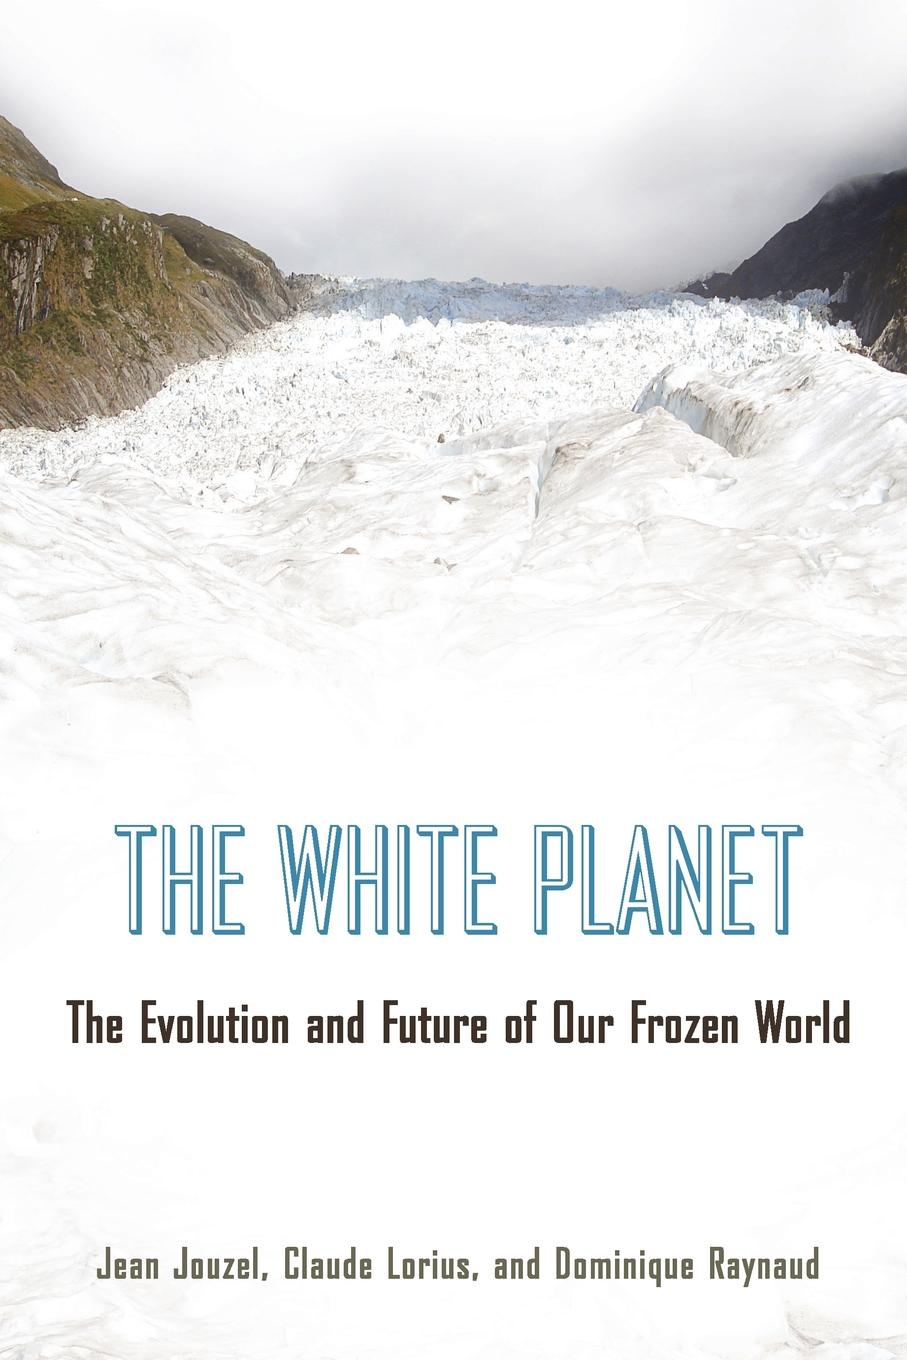 Jean Jouzel, Claude Lorius, Dominique Raynaud The White Planet. Evolution and Future of Our Frozen World